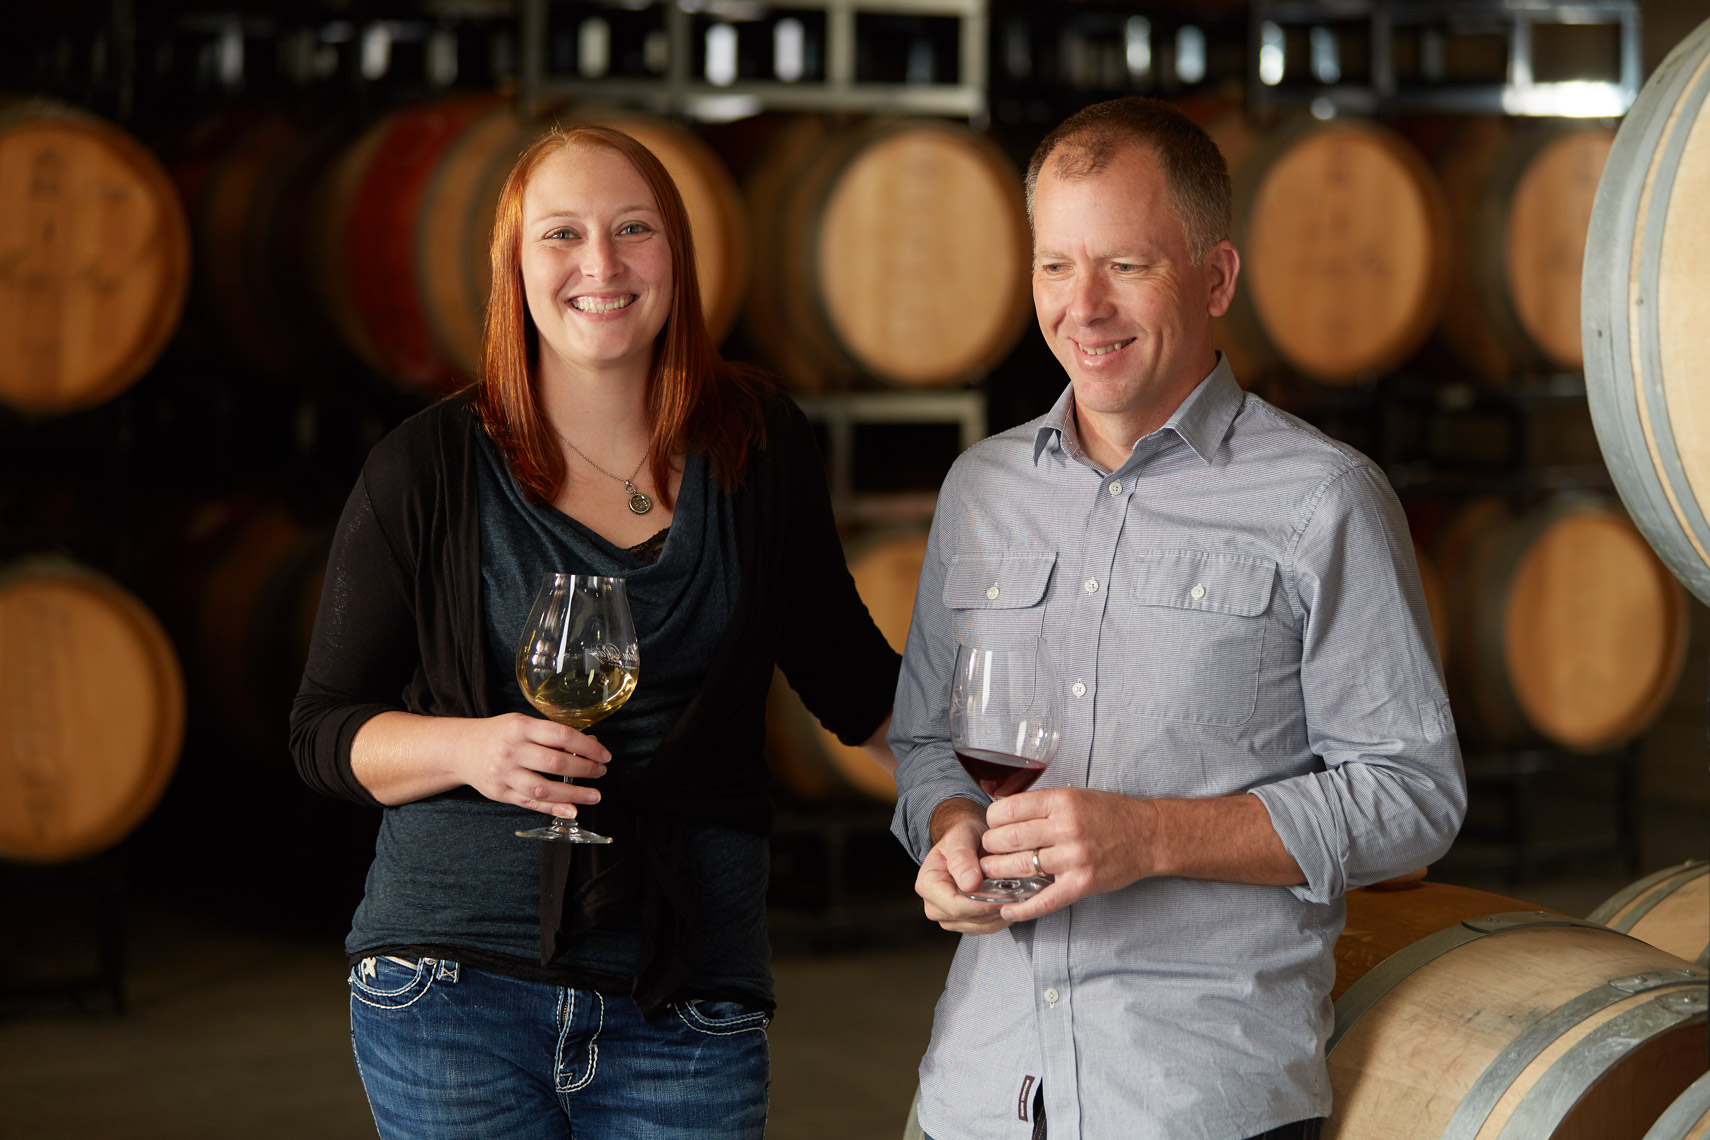 AlanCampbellPhotography, Winemakers in the barrel room